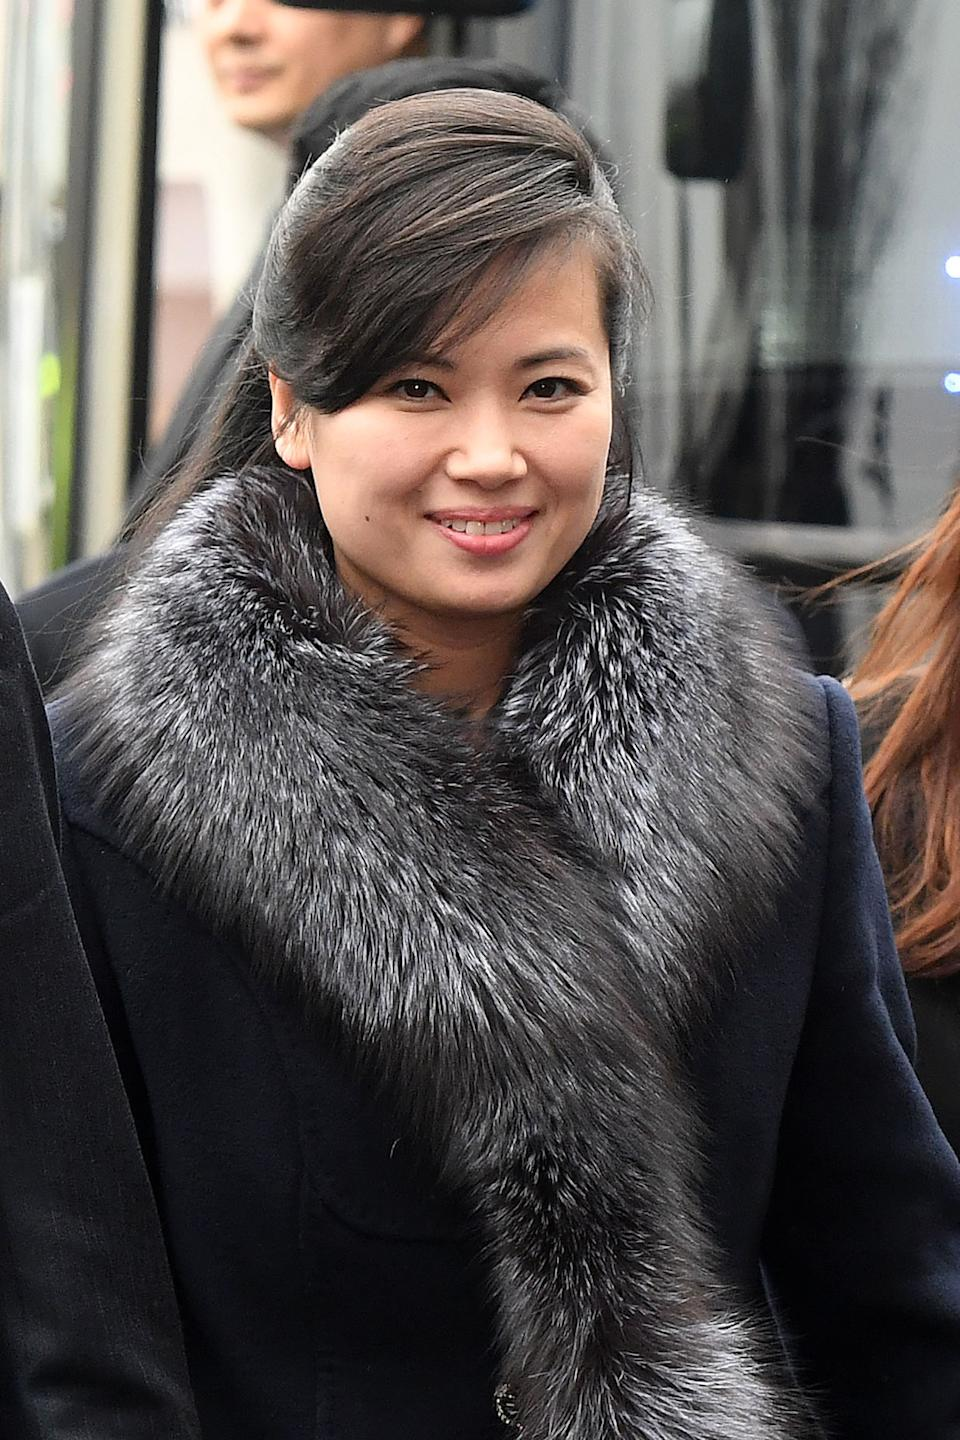 Hyon Song-Wol who seems to have taken the role of Kim's sister.